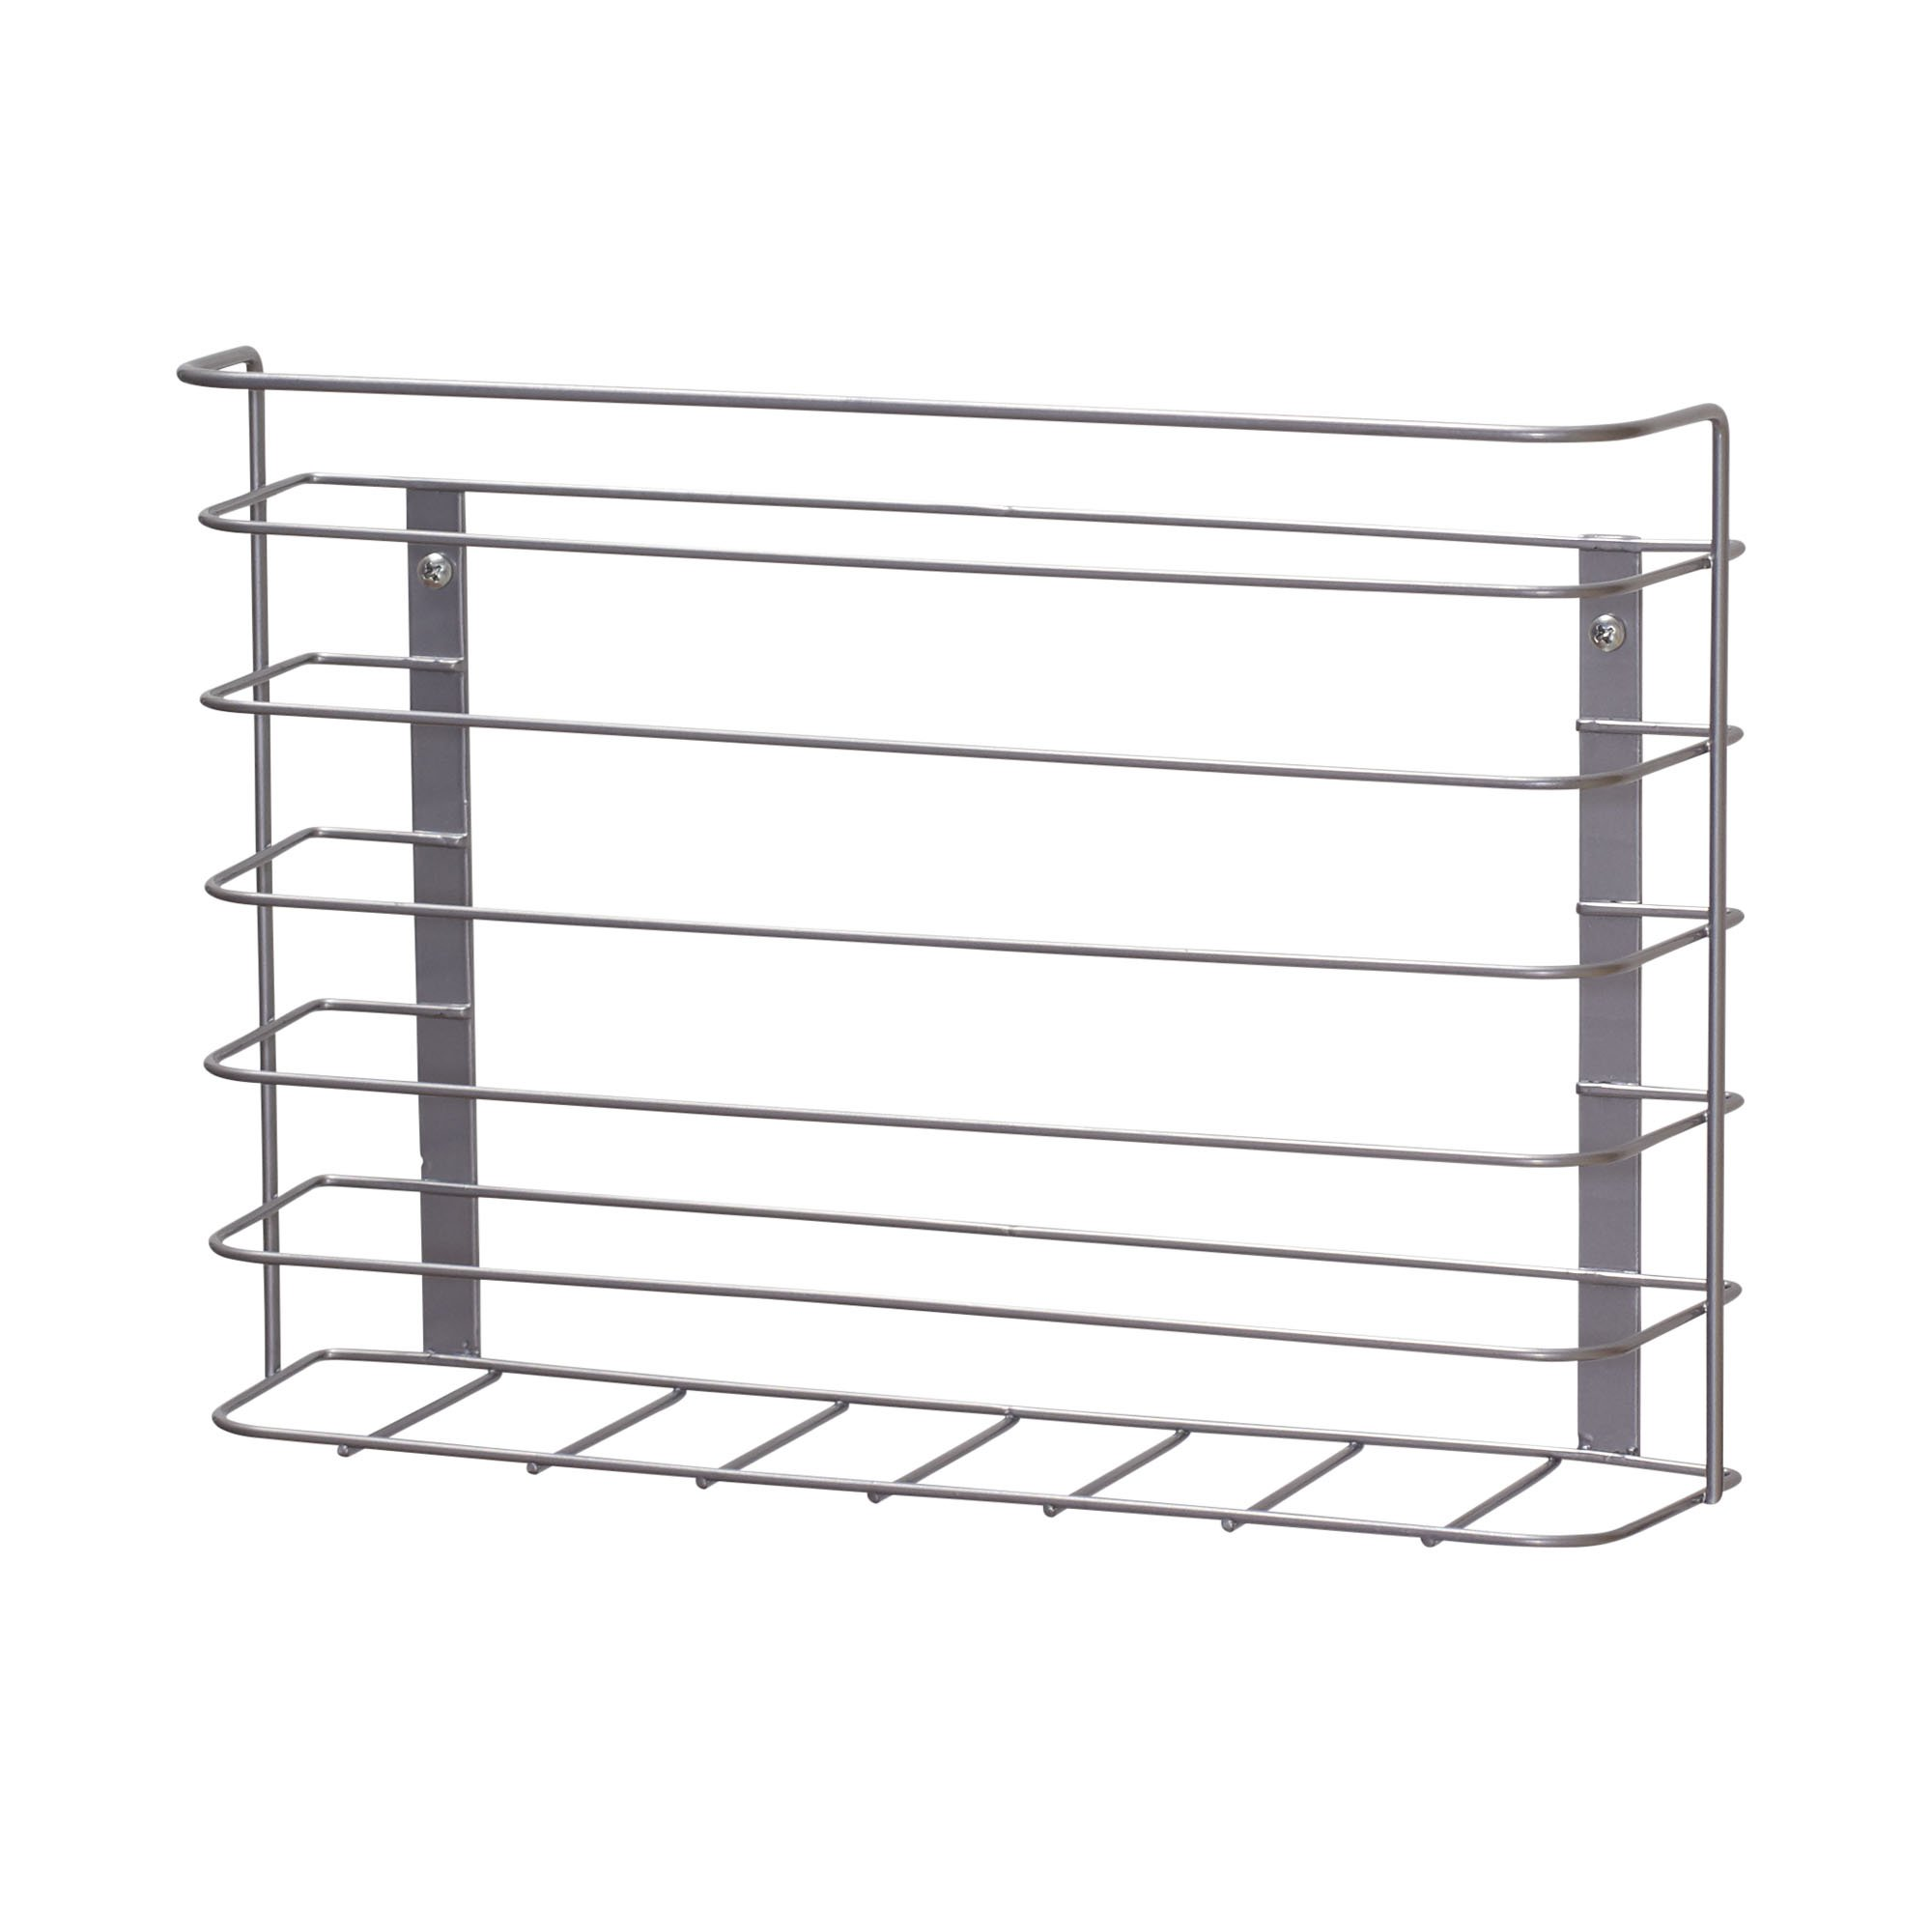 Household Essentials 1229-1 Tall Basket Door Mount Cabinet Organizer | Mounts to Solid Cabinet Doors or Walls by Household Essentials (Image #1)